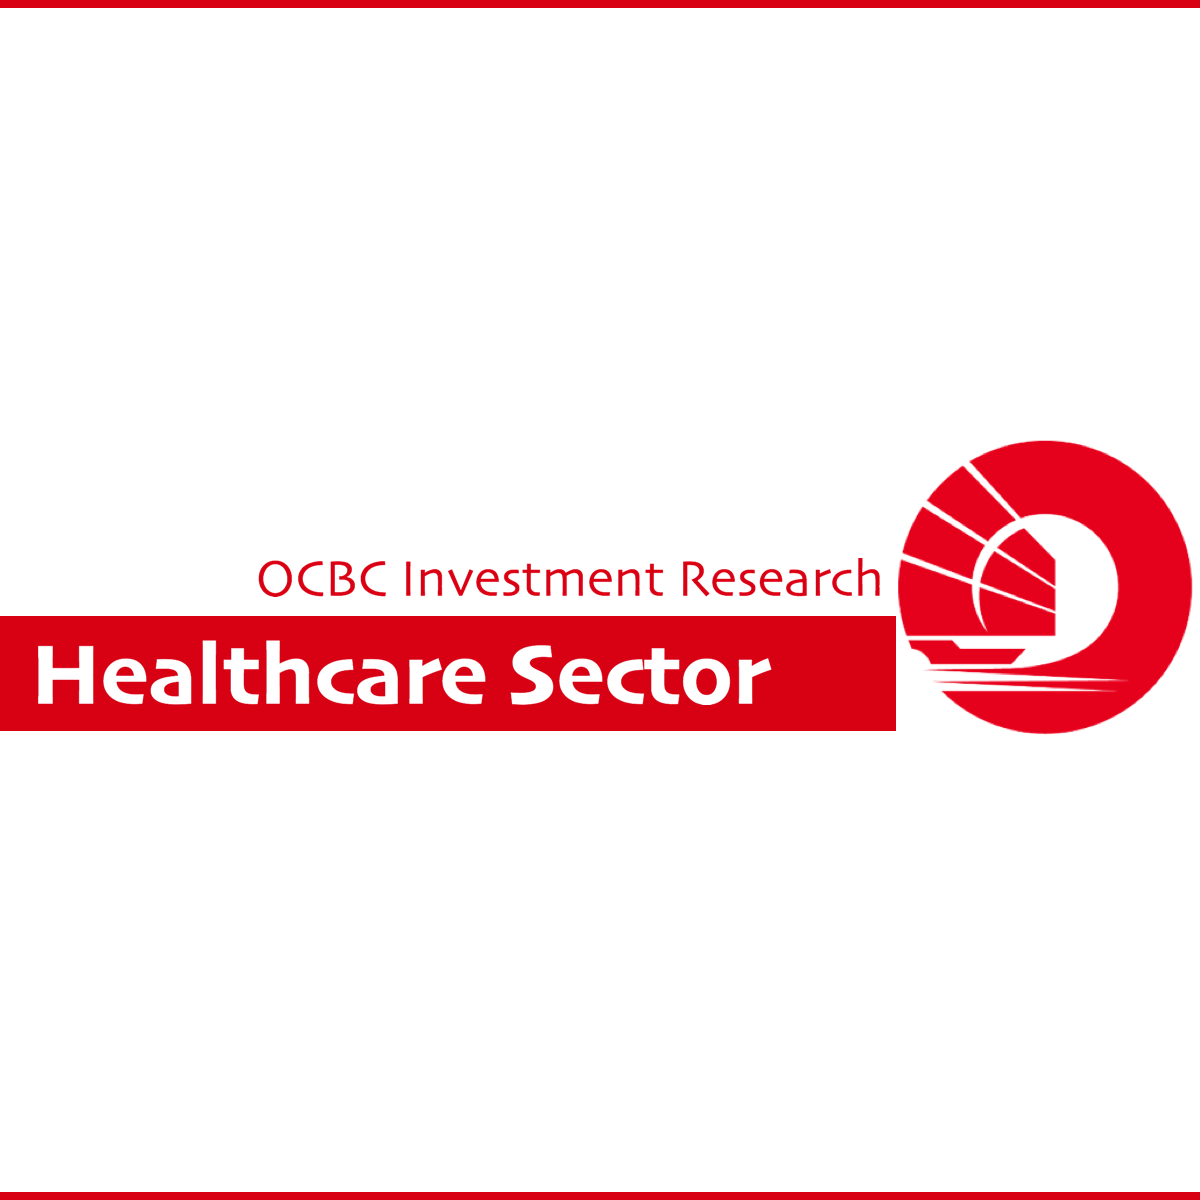 Healthcare Sector - OCBC Investment 2017-04-20: Tapping on China for growth continues